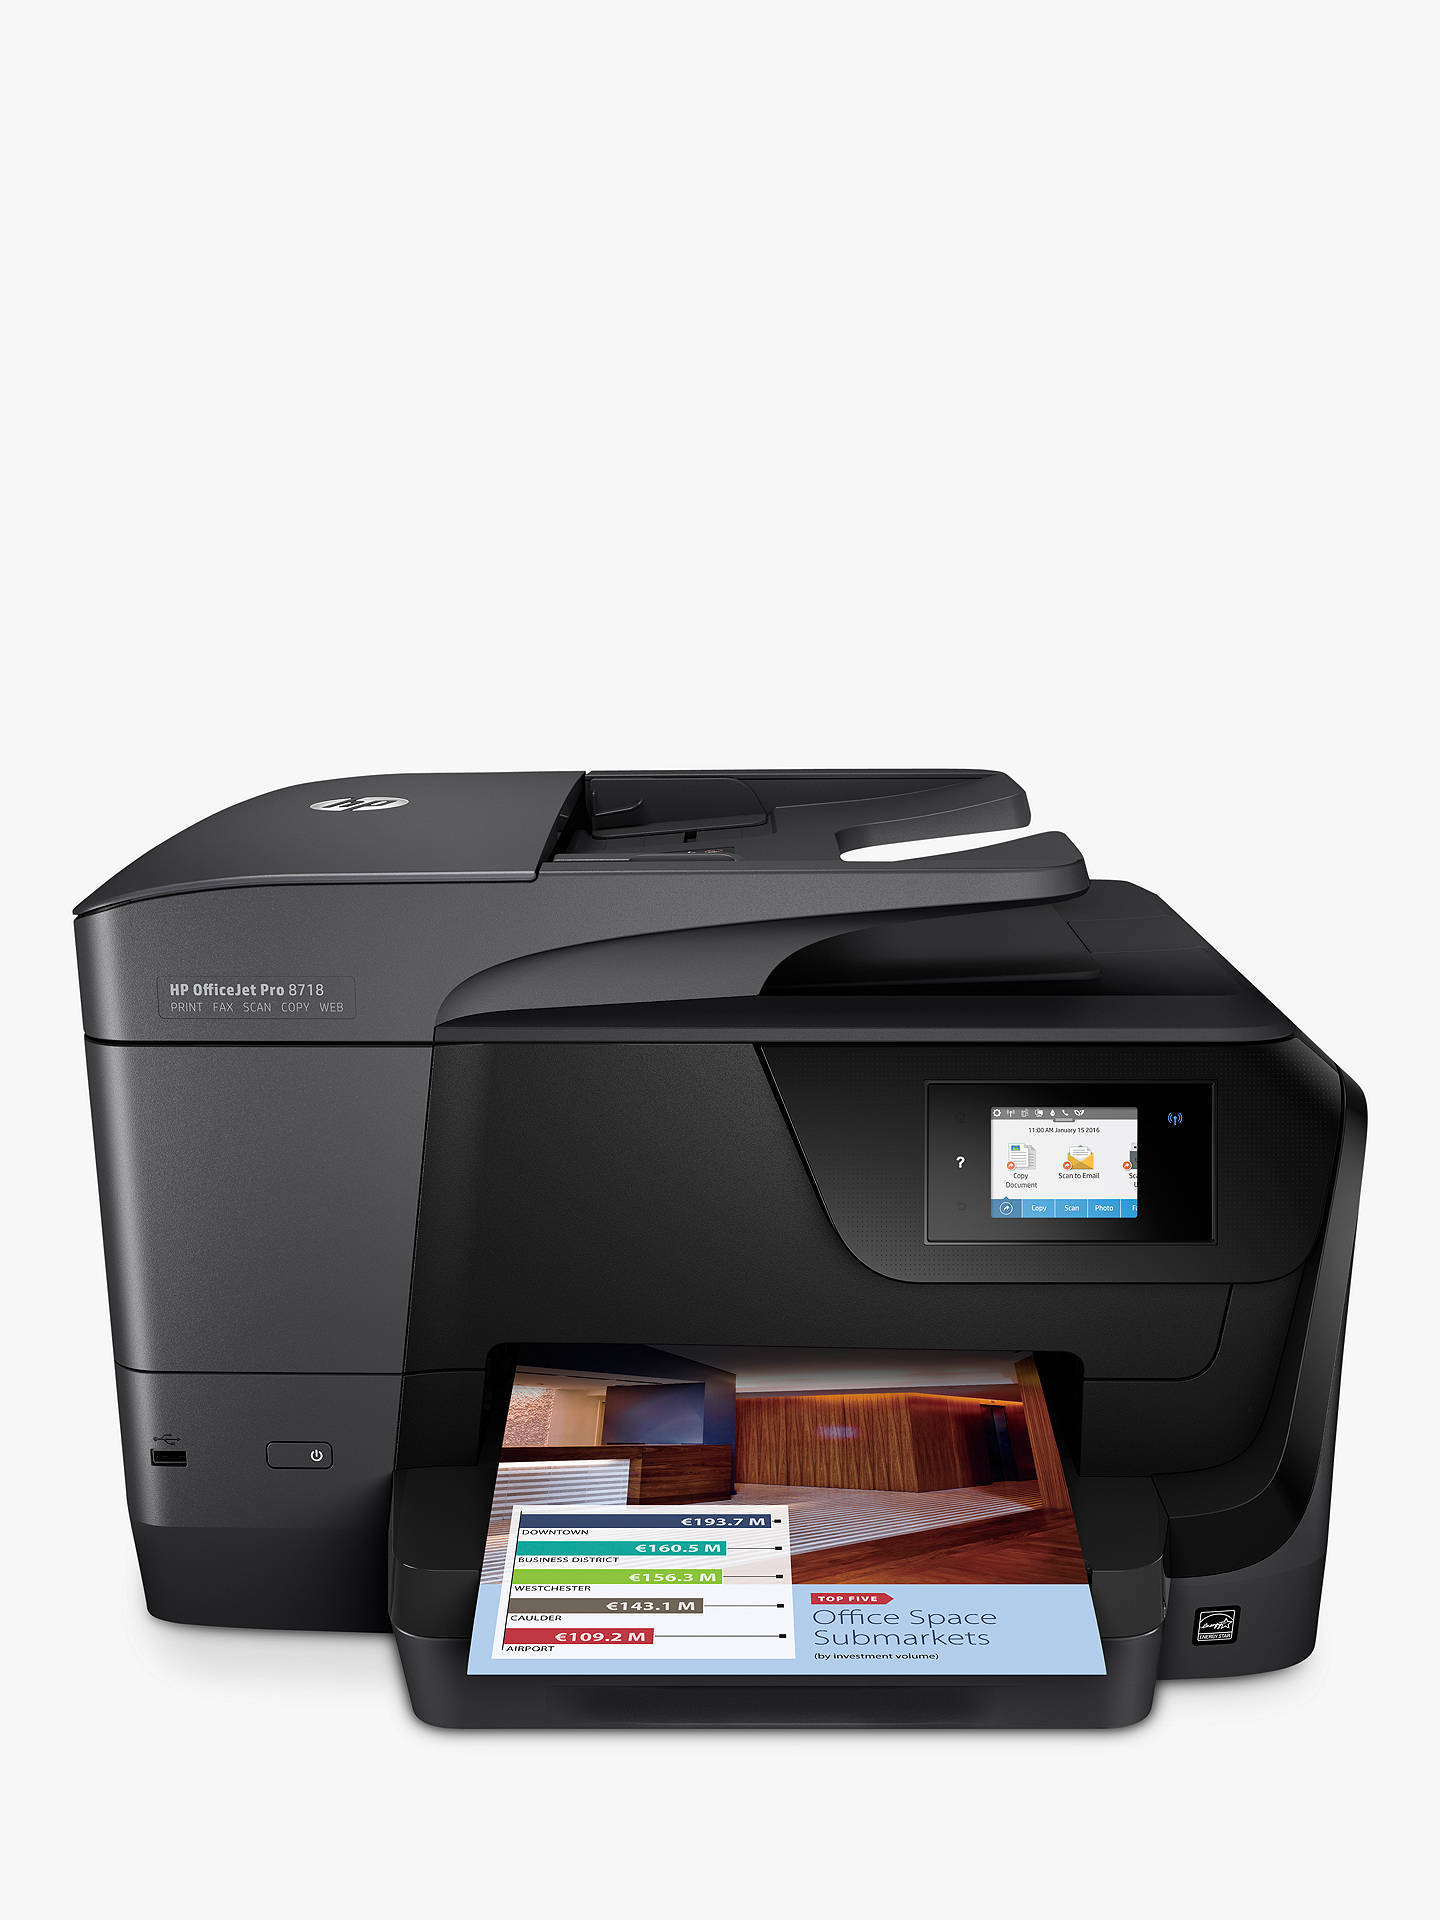 HP OfficeJet Pro 8718 All-in-One Wireless Printer & Fax ...